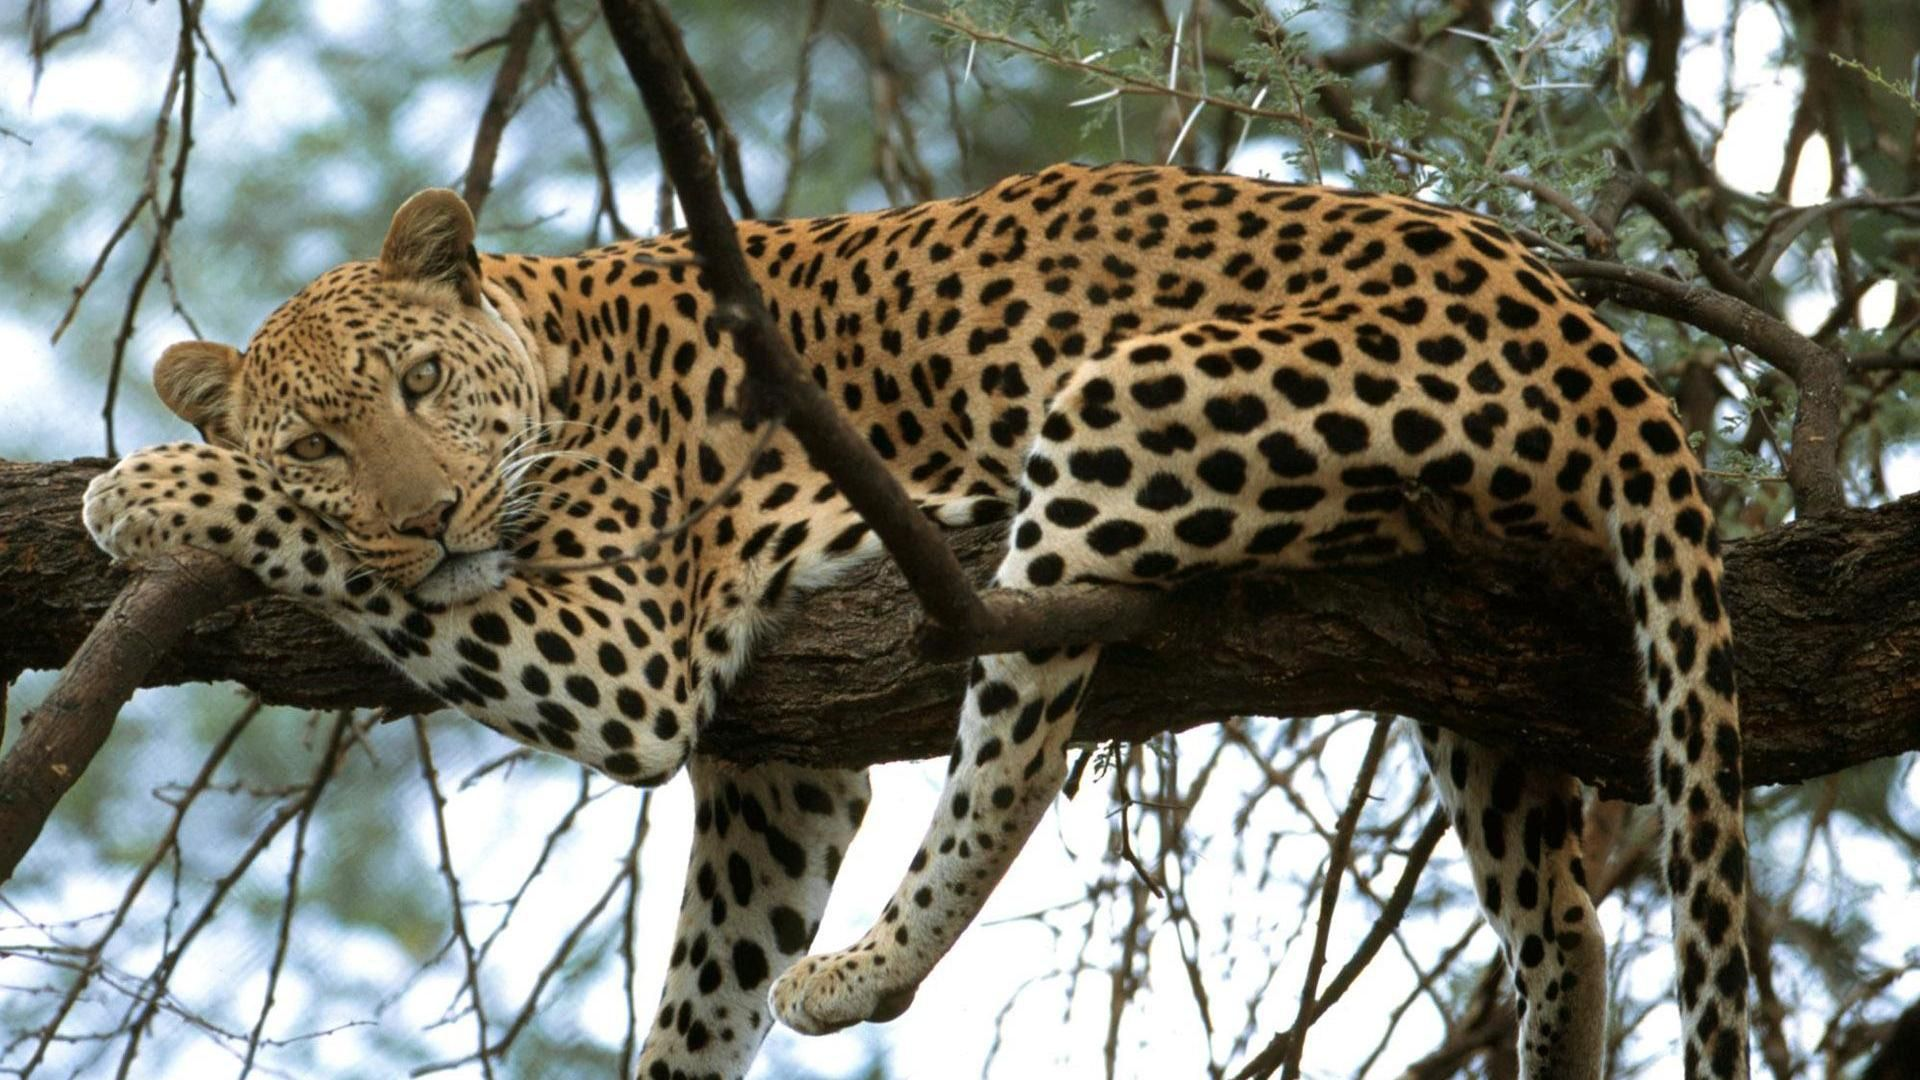 www.wallpaperscharlie.com wp-content uploads 2016 07 Leopard-on-Tree ...